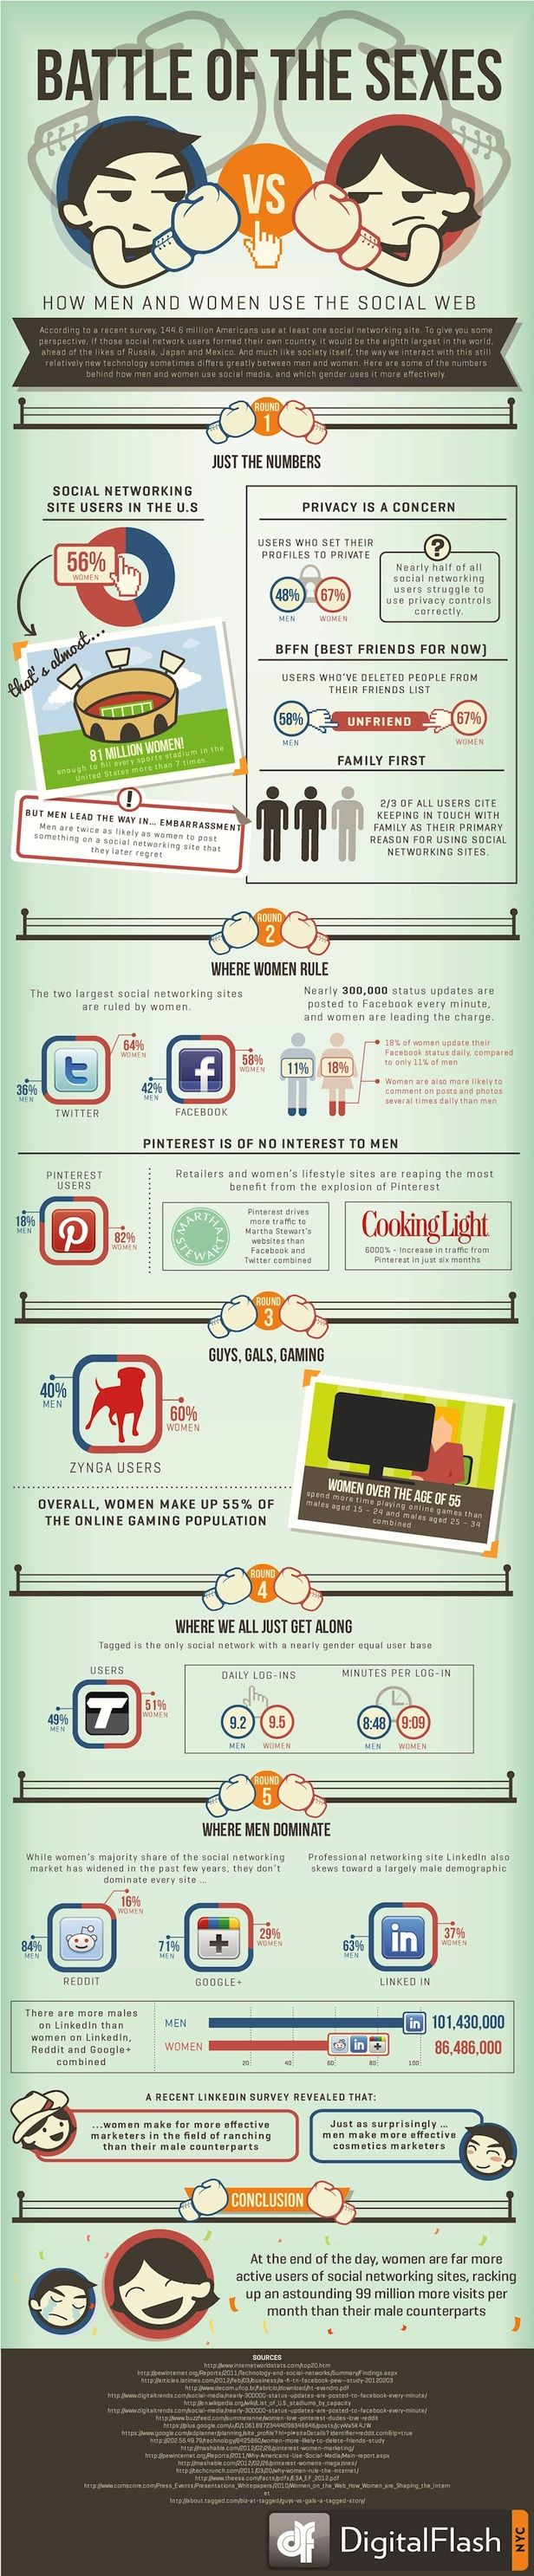 Battle of the sexes: Men are from Reddit, women are from Pinterest - what a great title and very true for many consumers and/or marketers. #pinterest #social #SMM